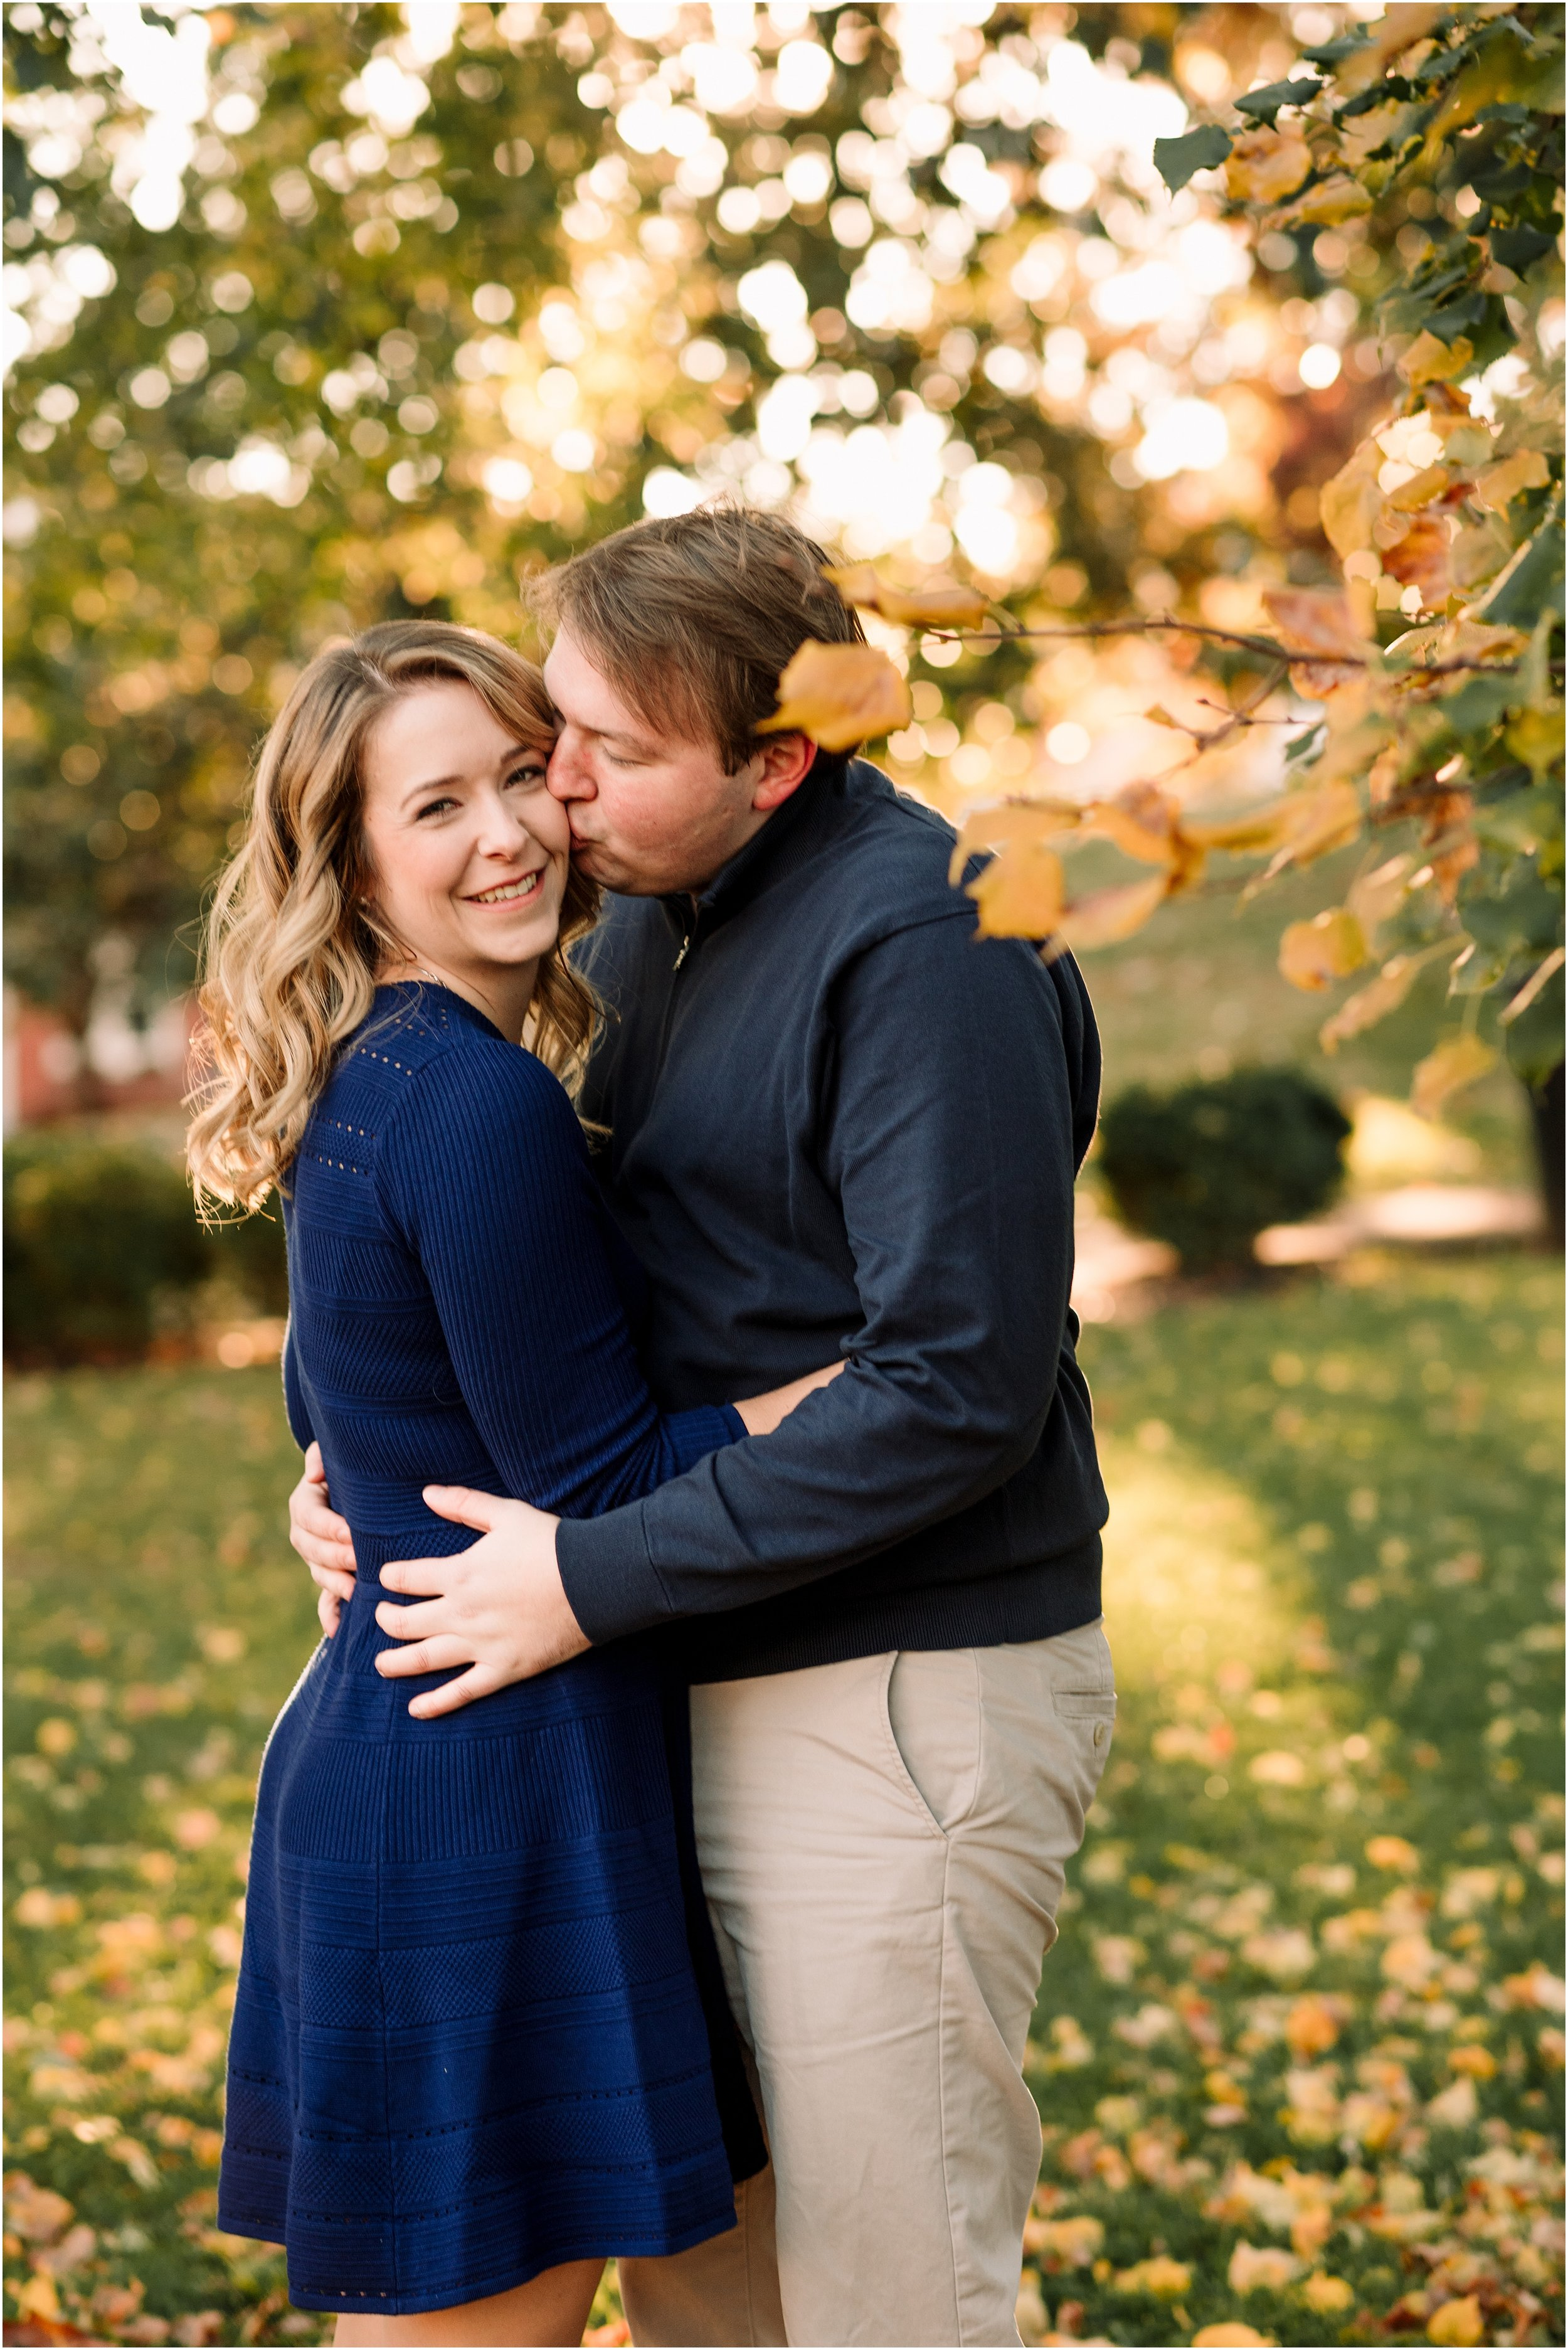 hannah leigh photography Annapolis MD Engagement Session_2353.jpg